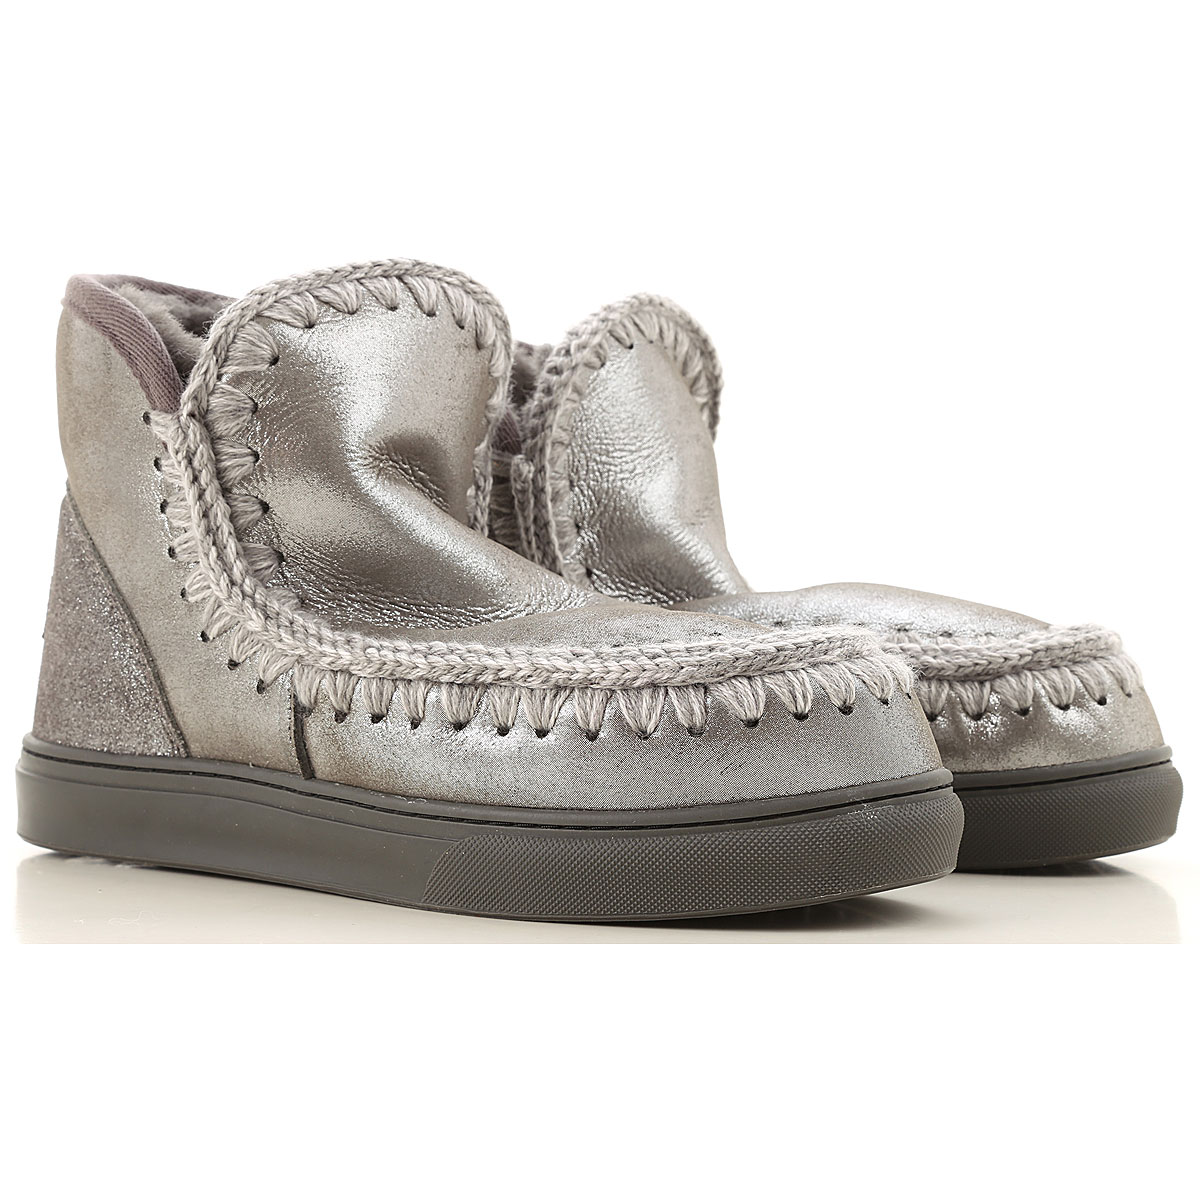 Mou Boots for Women, Booties, Silver, Leather, 2019, EUR 37 - UK 4 - USA 6.5 EUR 40 - UK 7 - USA 9.5